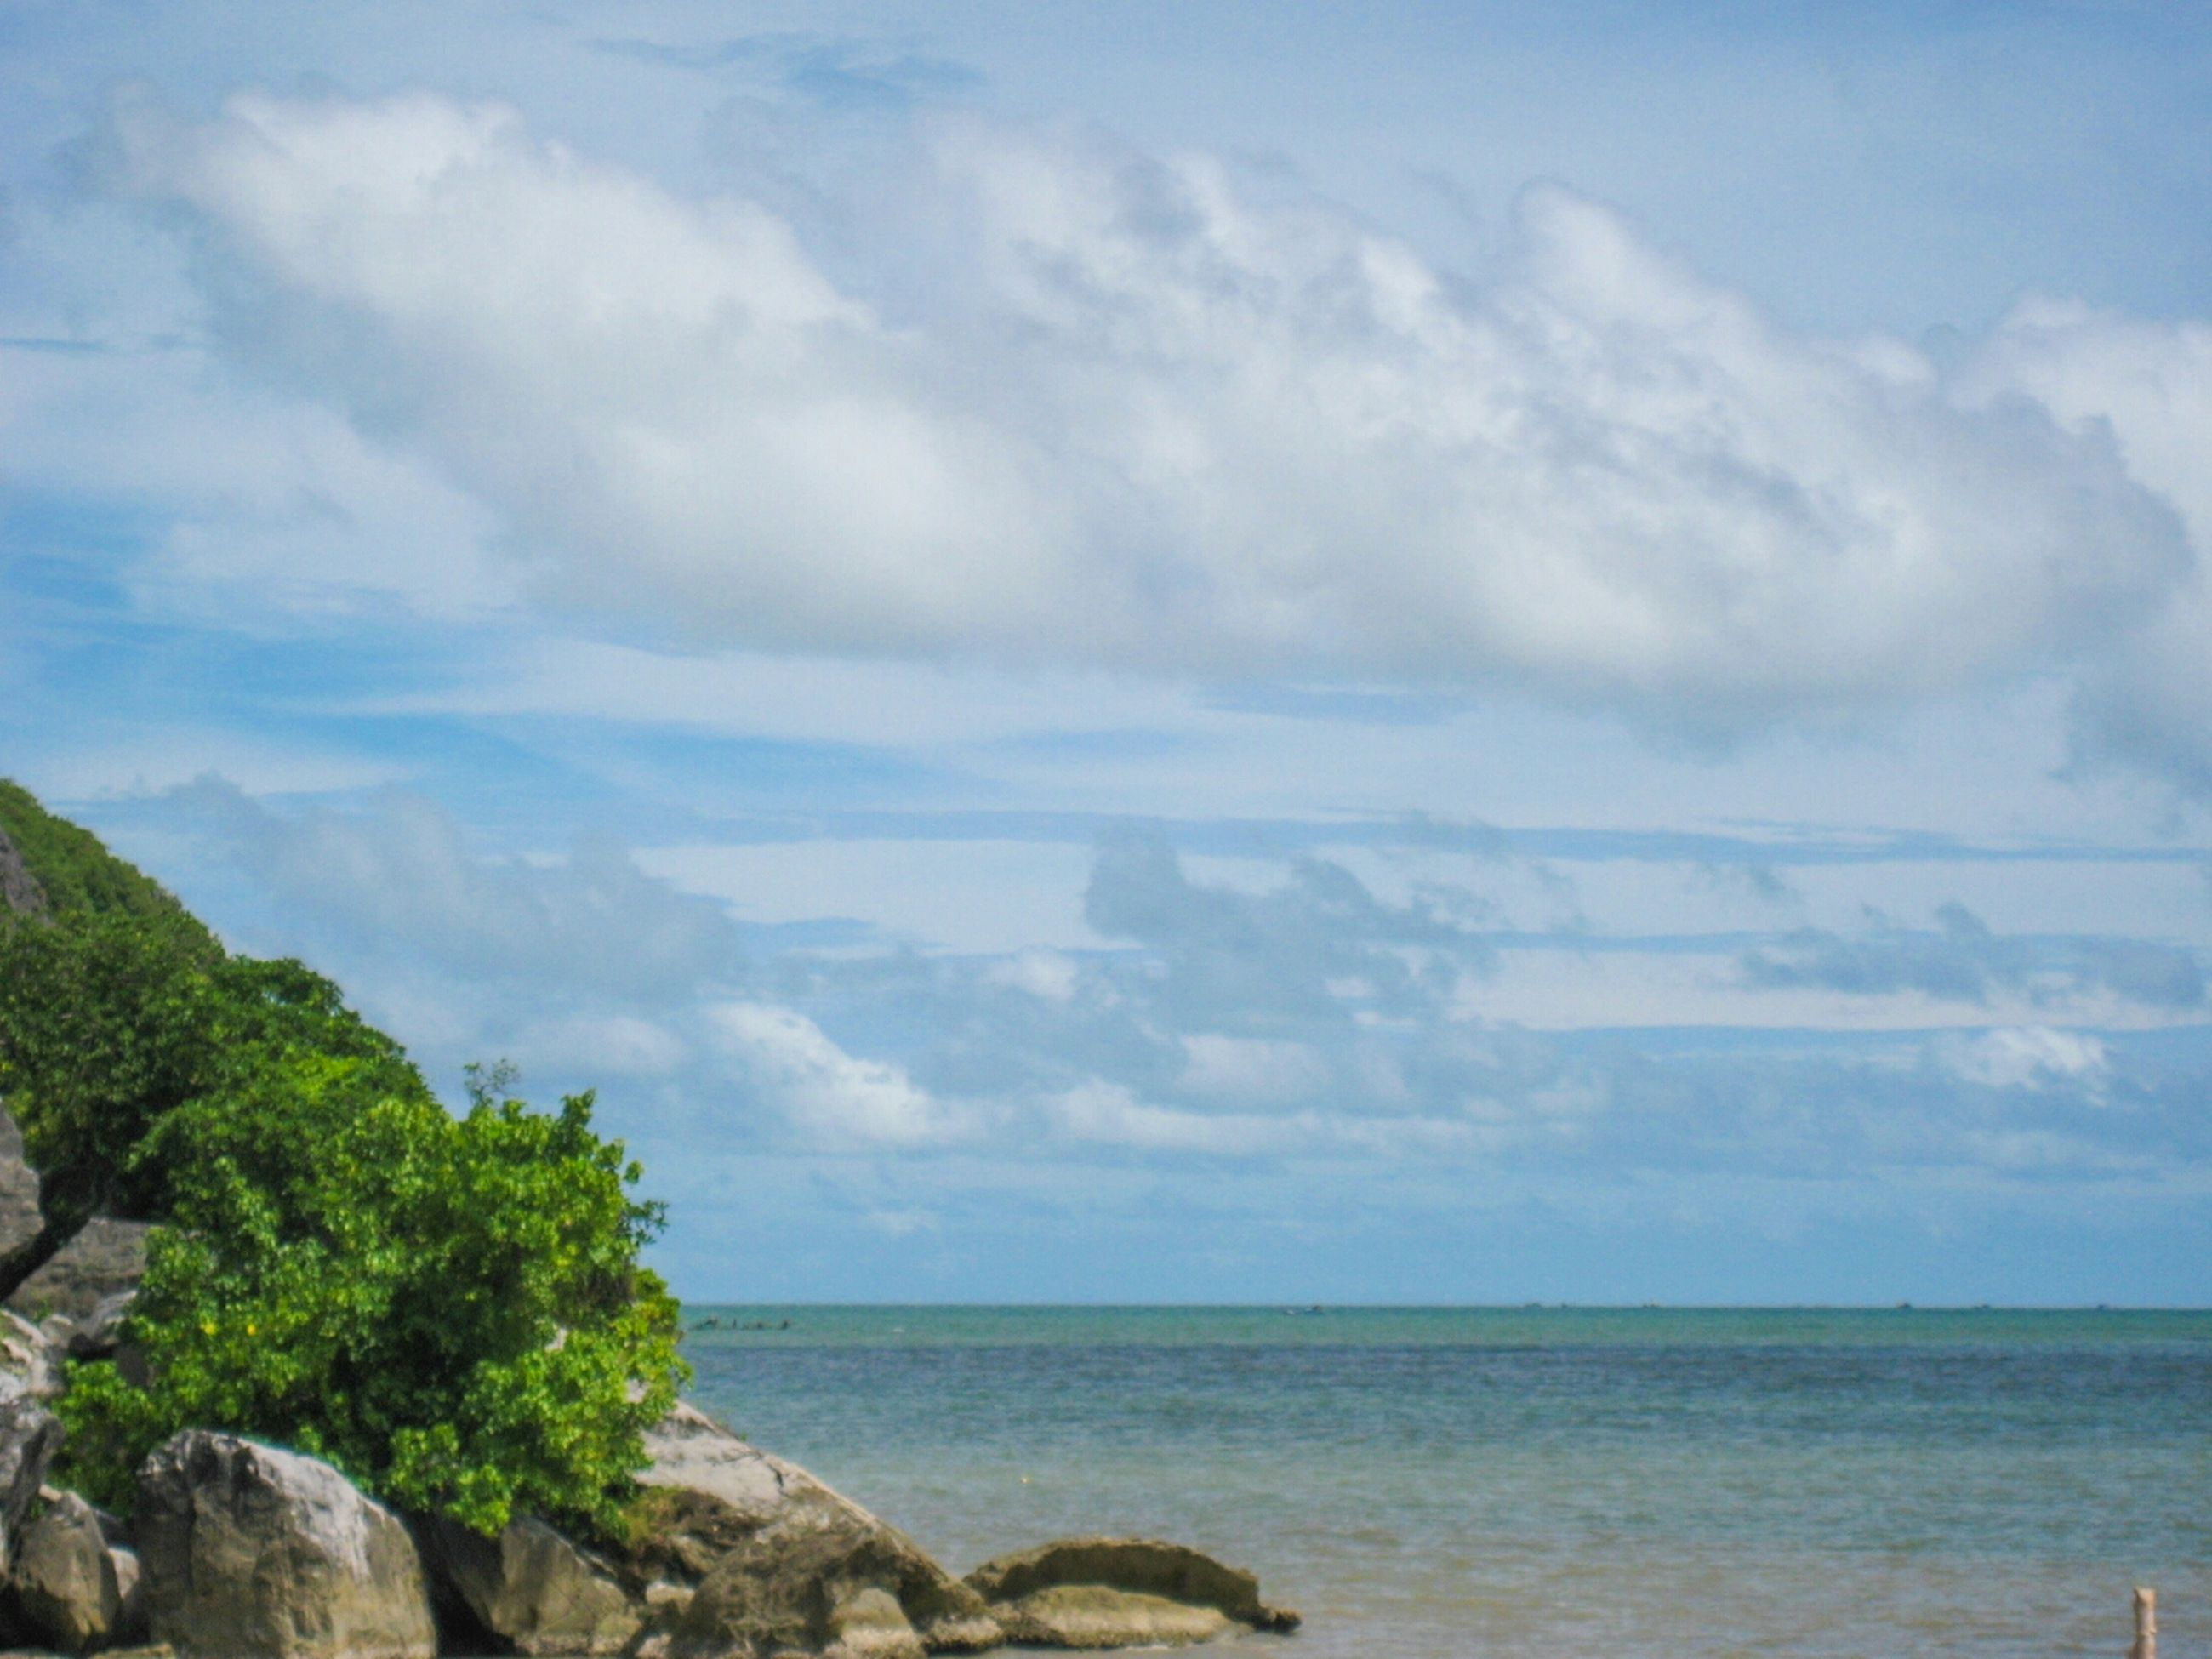 sea, horizon over water, sky, water, scenics, tranquil scene, beauty in nature, tranquility, cloud - sky, nature, rock - object, cloudy, cloud, idyllic, day, outdoors, blue, non-urban scene, no people, remote